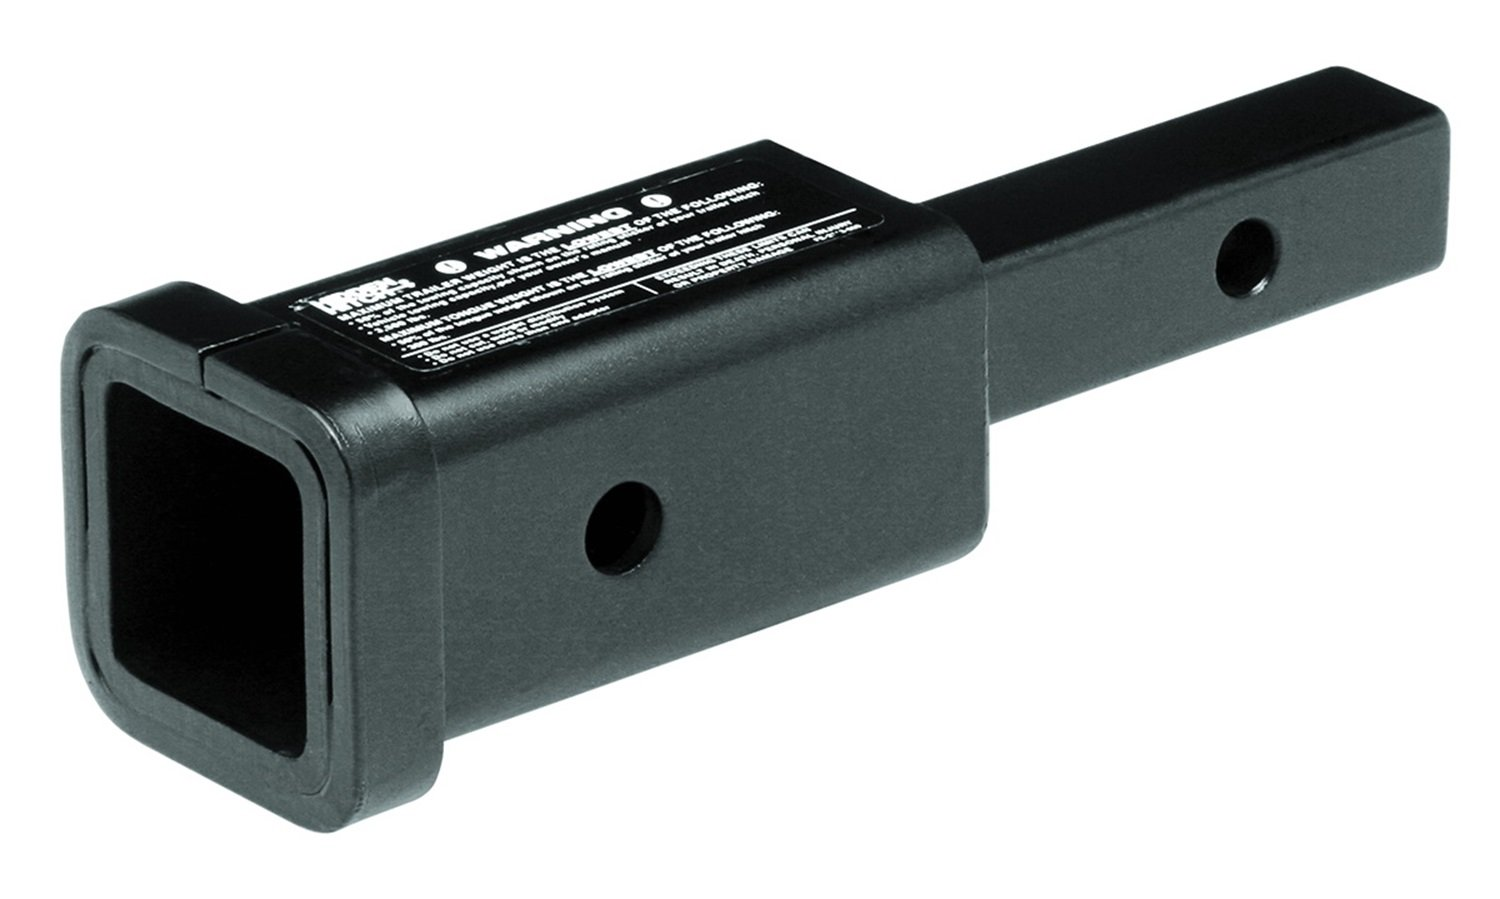 Tow Ready Reese 80303 Receiver Adapter-1-1/4 to 2'', 6'' Length, 3500 lbs by Tow Ready